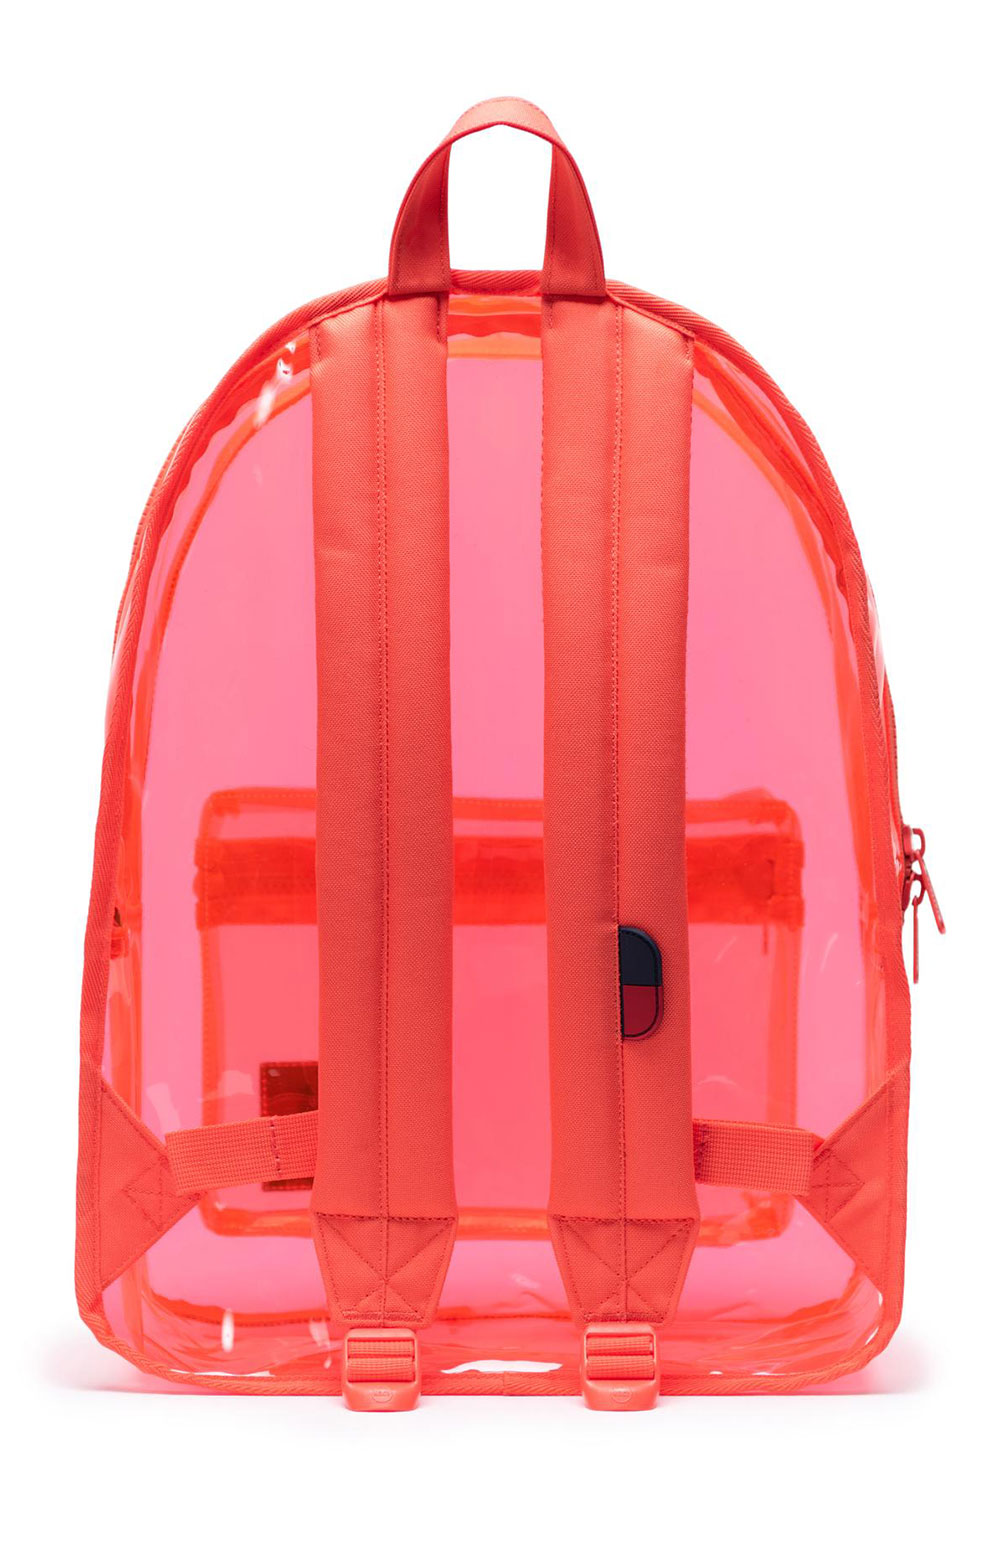 Classic Clear Backpack XL - Hot Coral  3